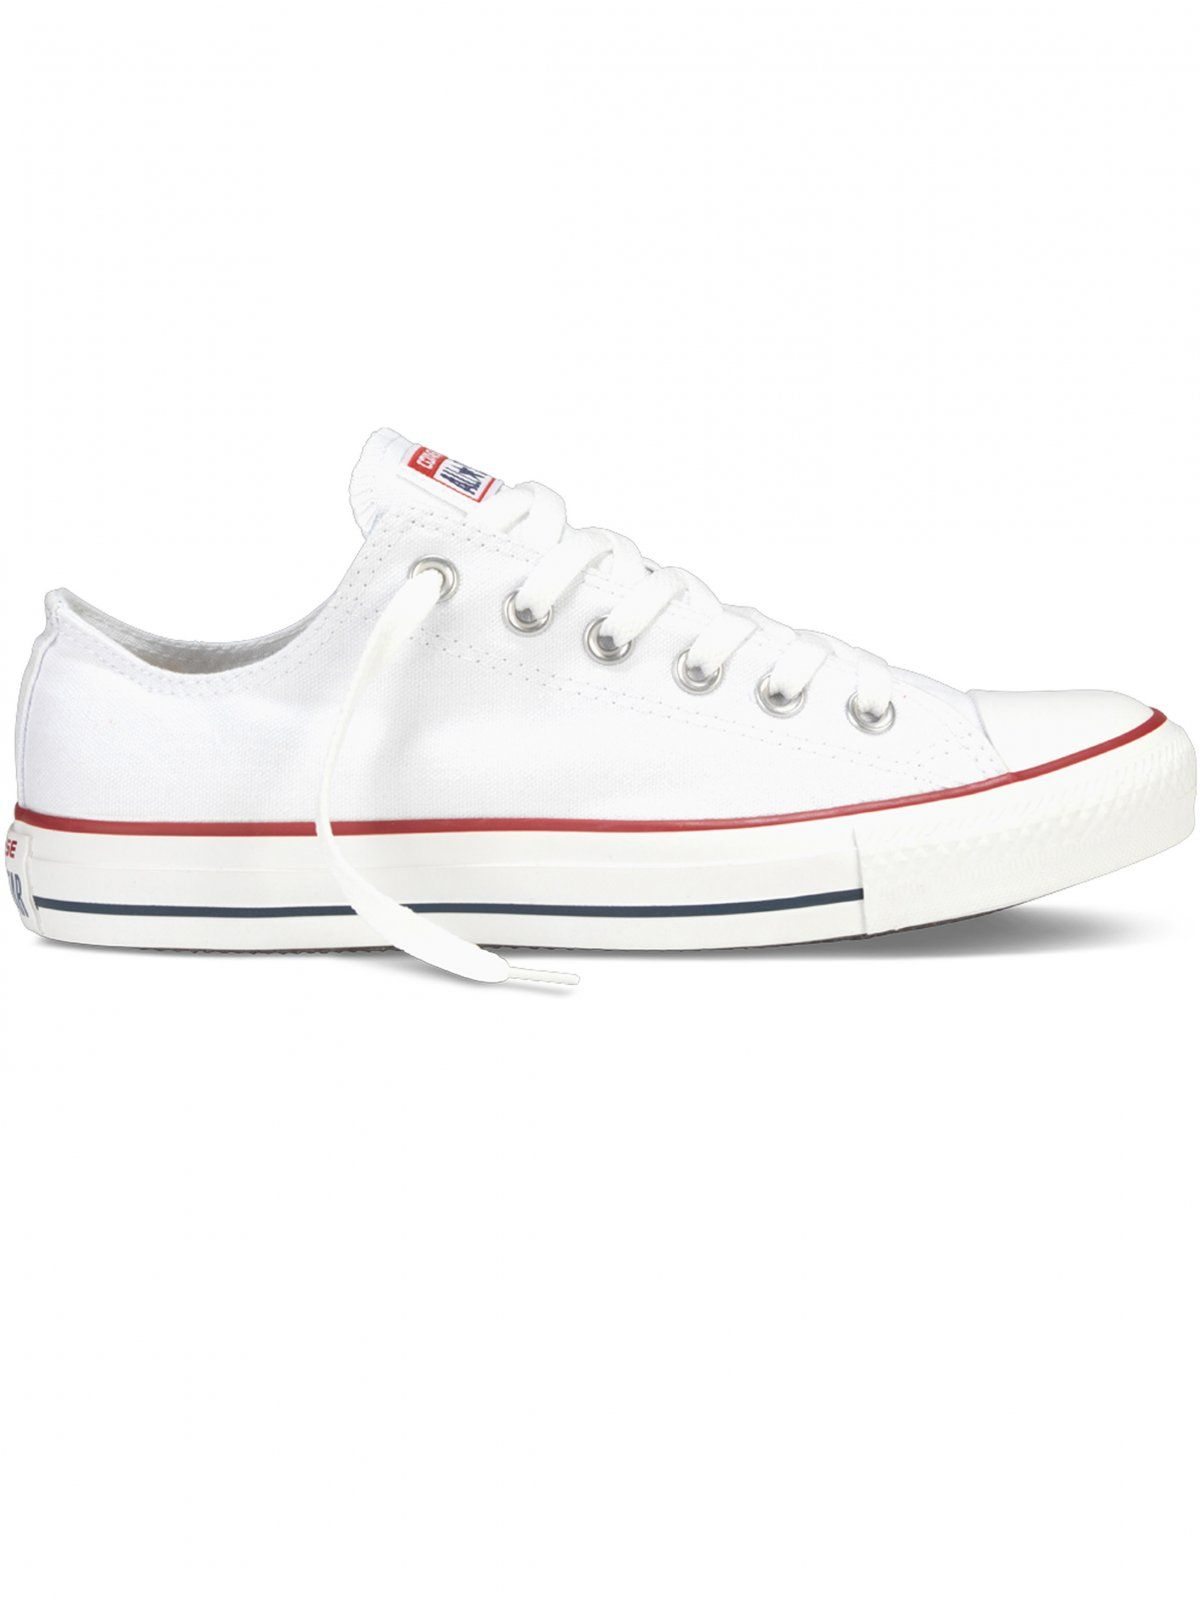 Converse All Star Unisex Chuck Taylor Low Top - White